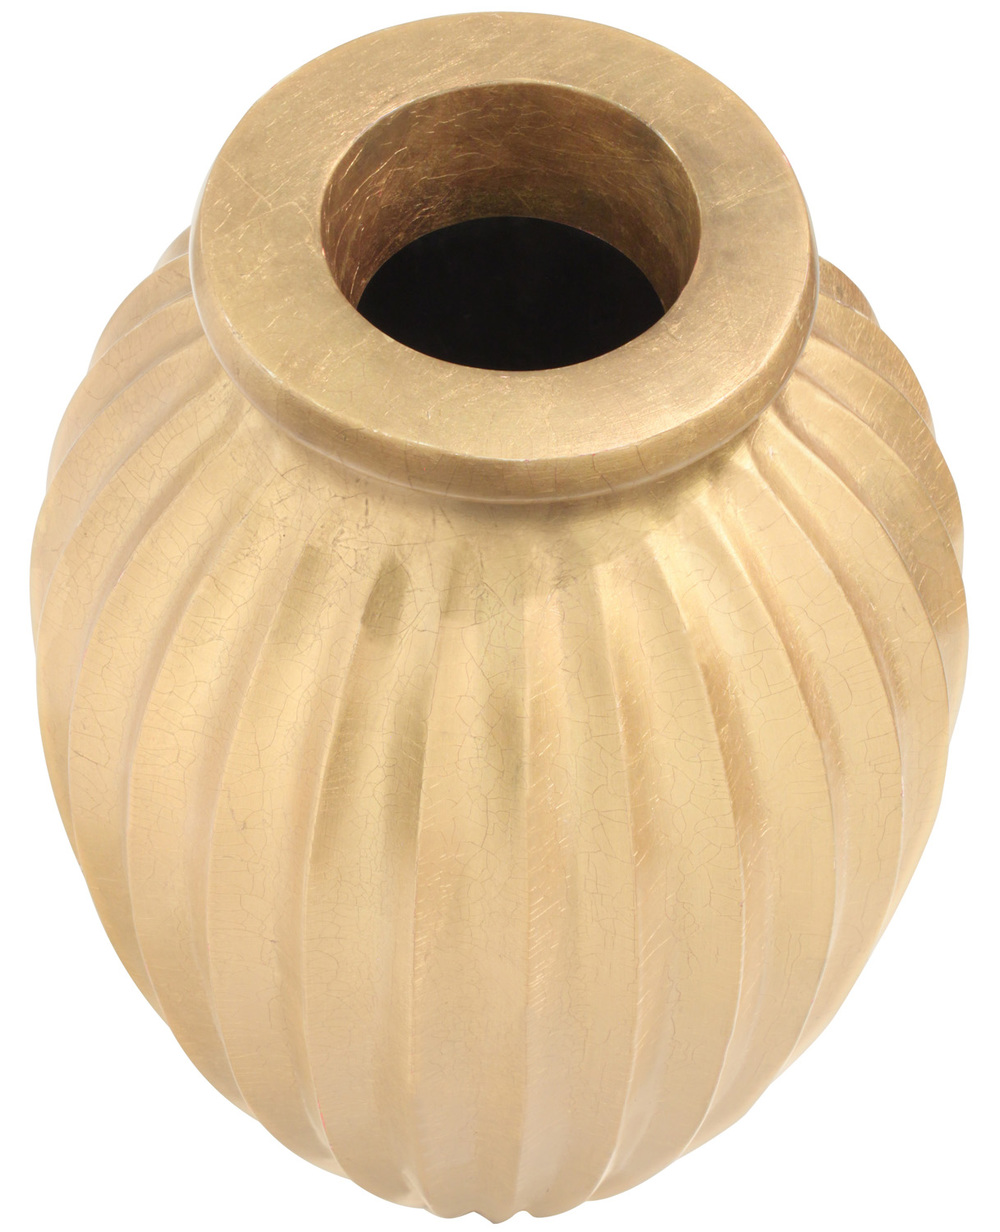 Springer 65 lrg gold fluted vases accessory137detail2 hires.jpg